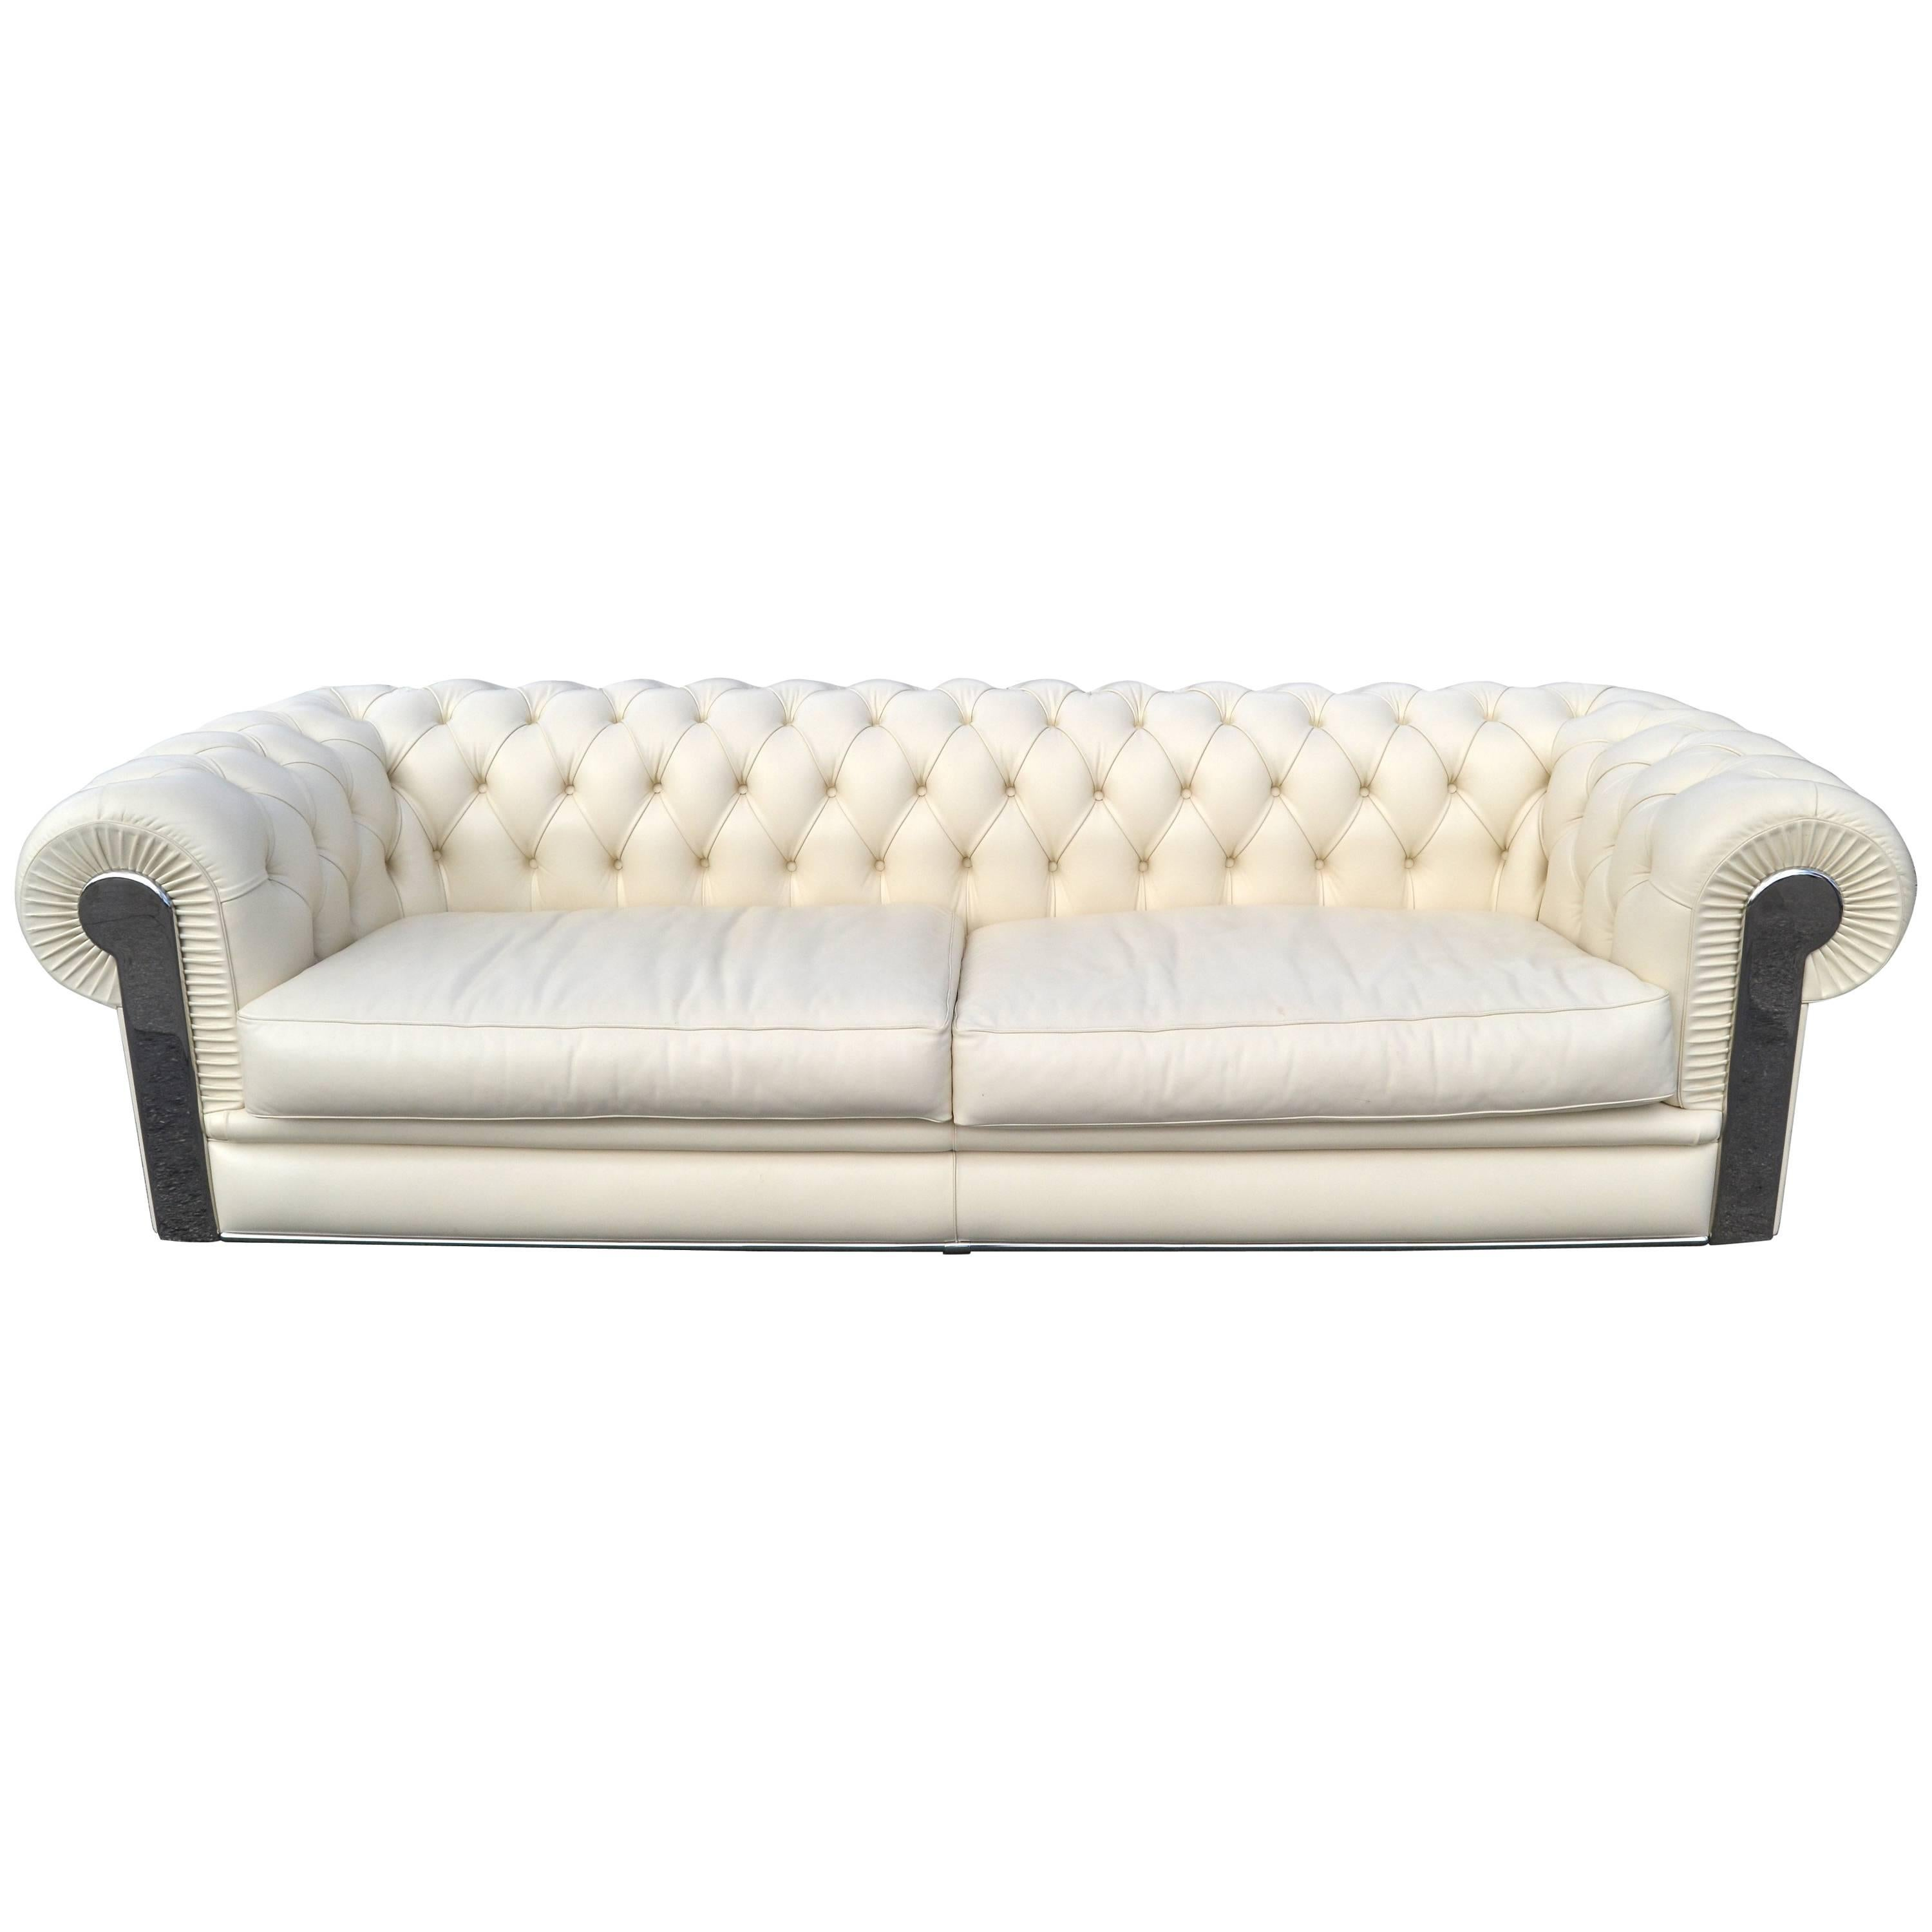 Genial Fendi Casa Albino Tufted Leather Sofa In Chesterfield Style For Sale